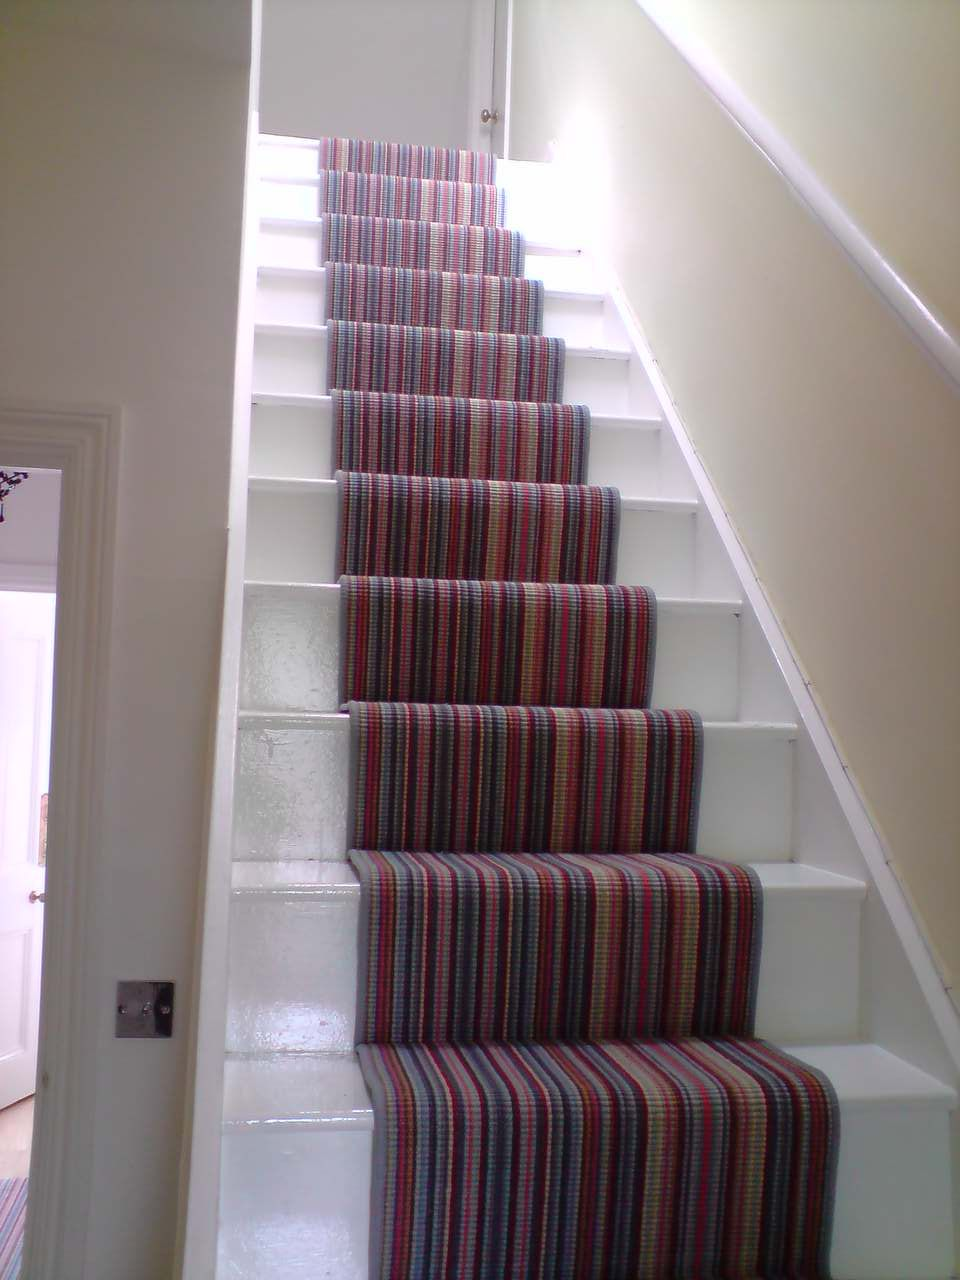 Best Patterned Stair Runner Image Courtesy Of Nikkibs Com 640 x 480